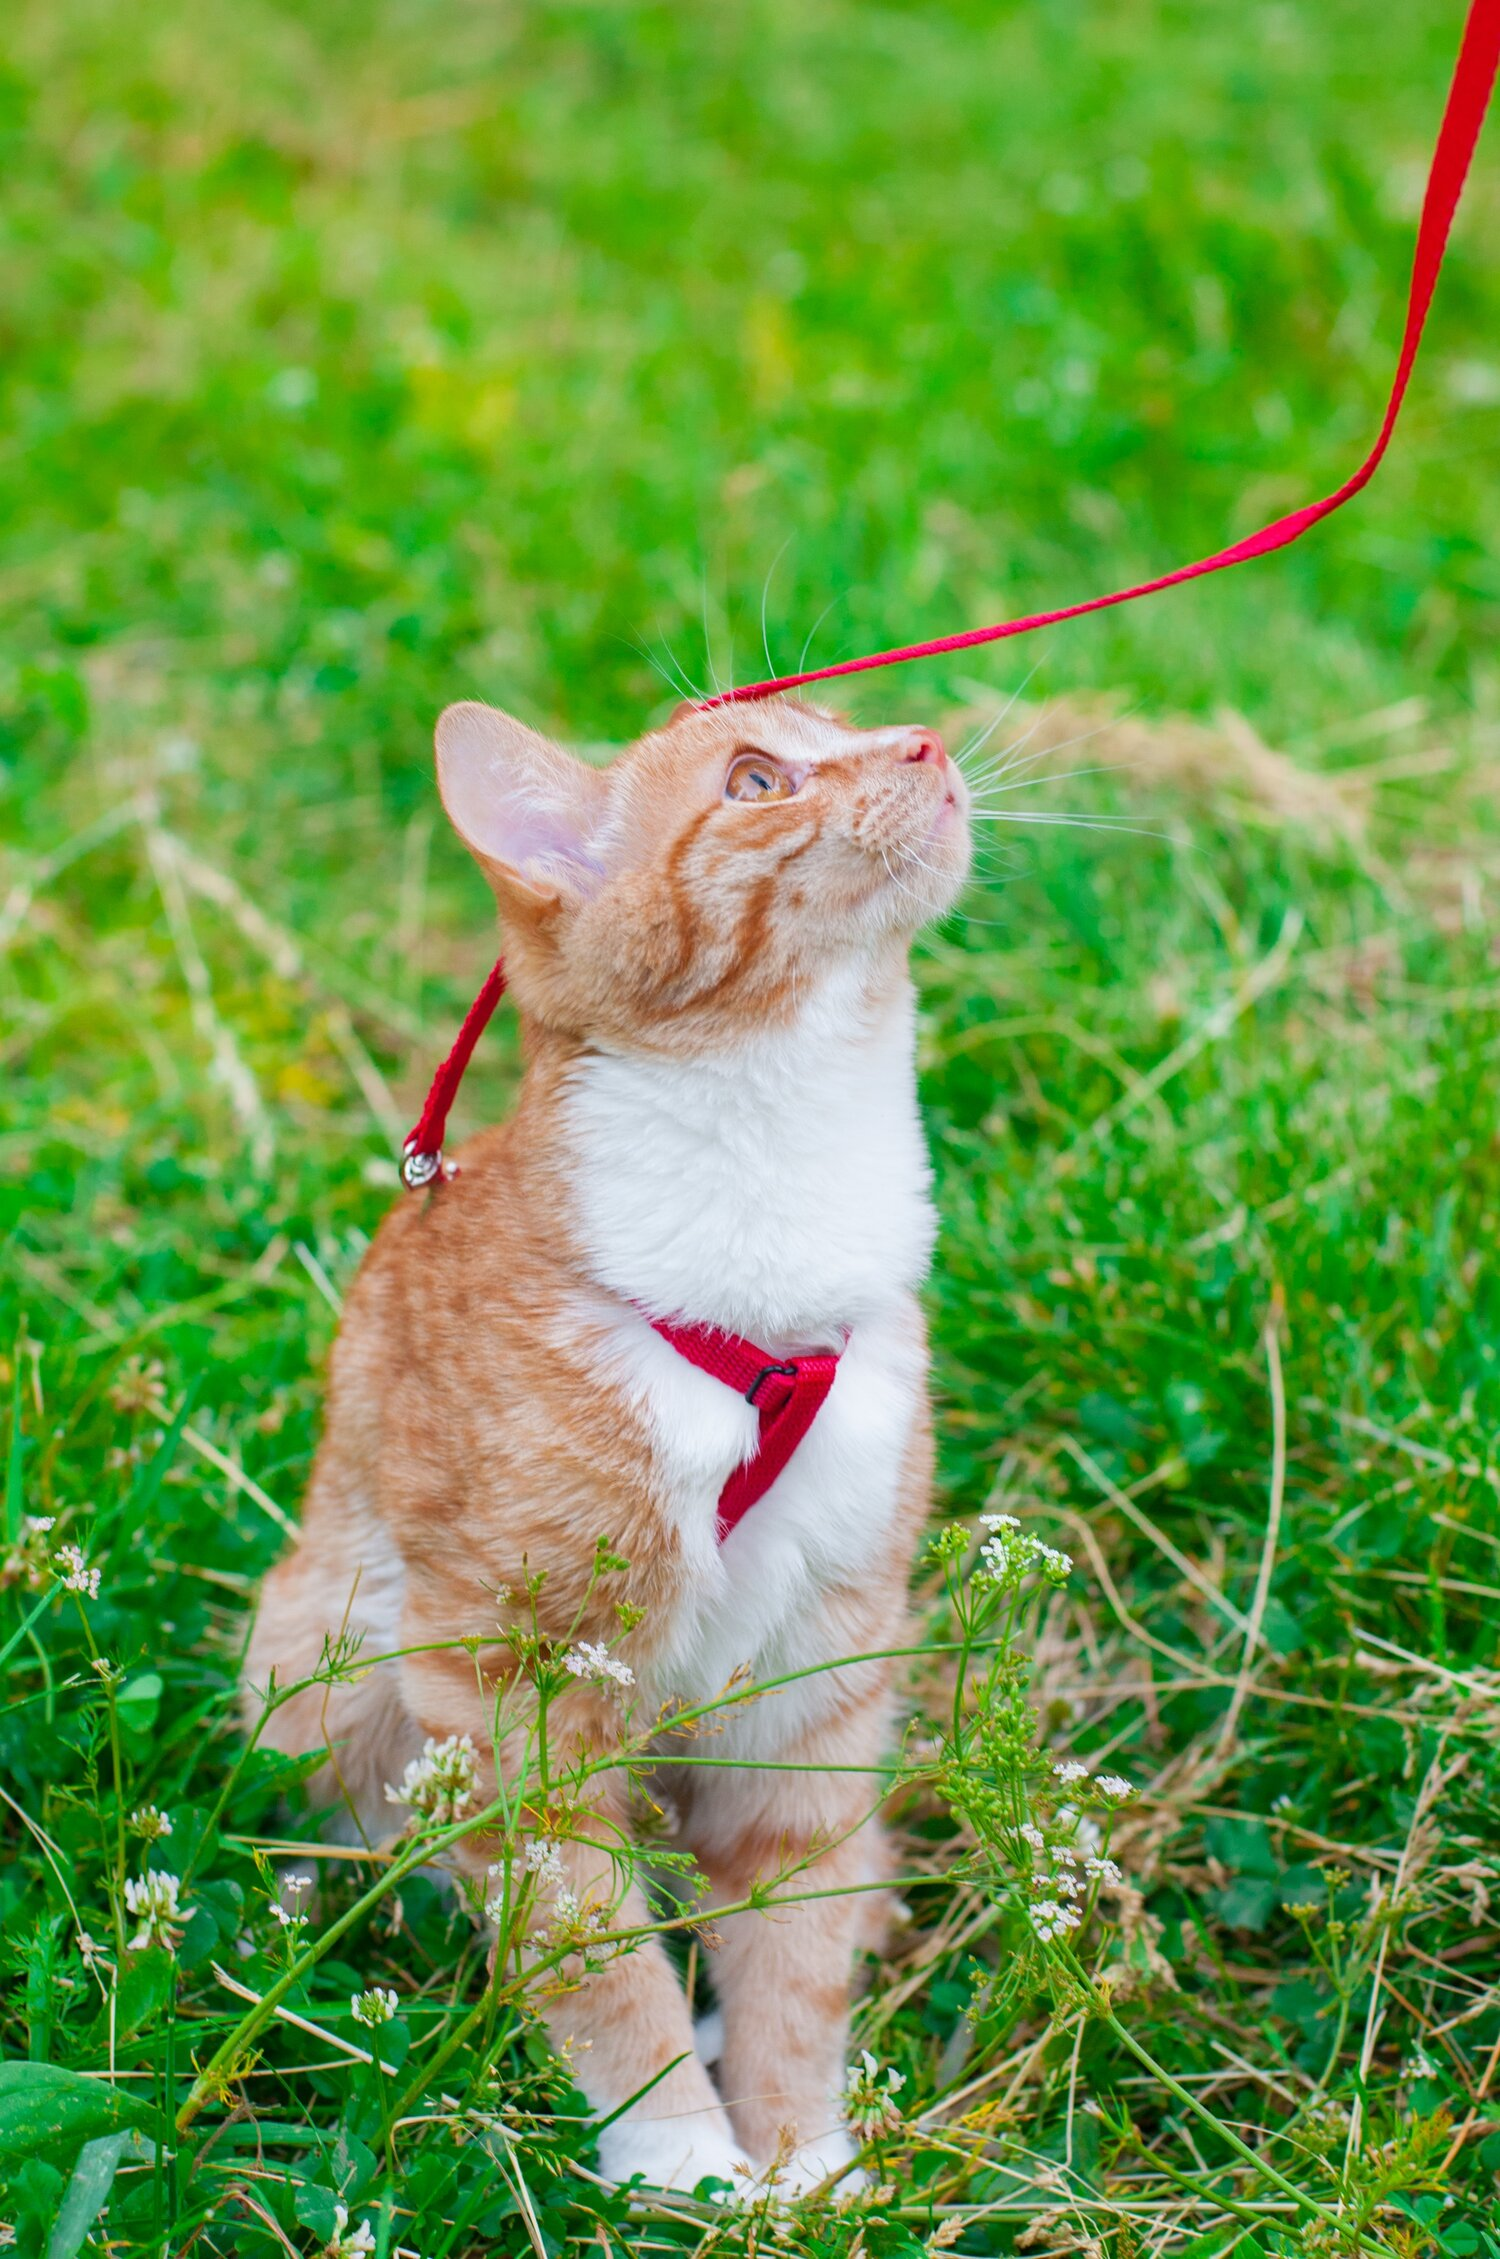 Start early. Train your cat to get used to a harness and walking on a leash.